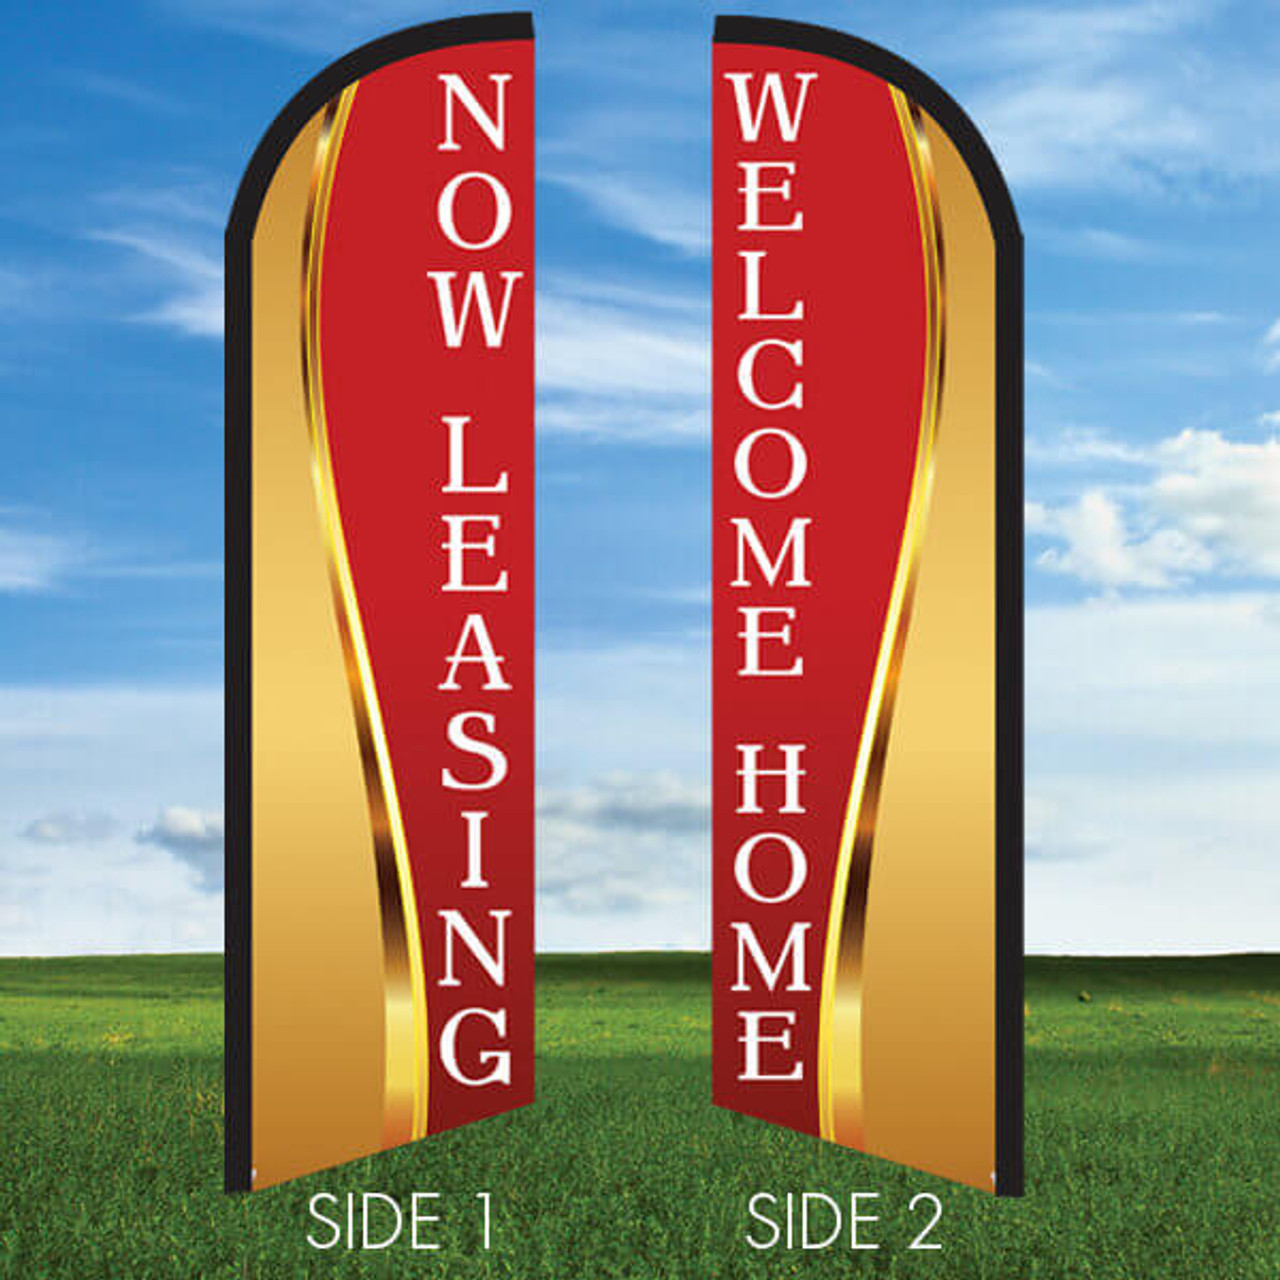 Goldness Gracious Two-Sided Flag Only Windleasers 24/7 Widebody